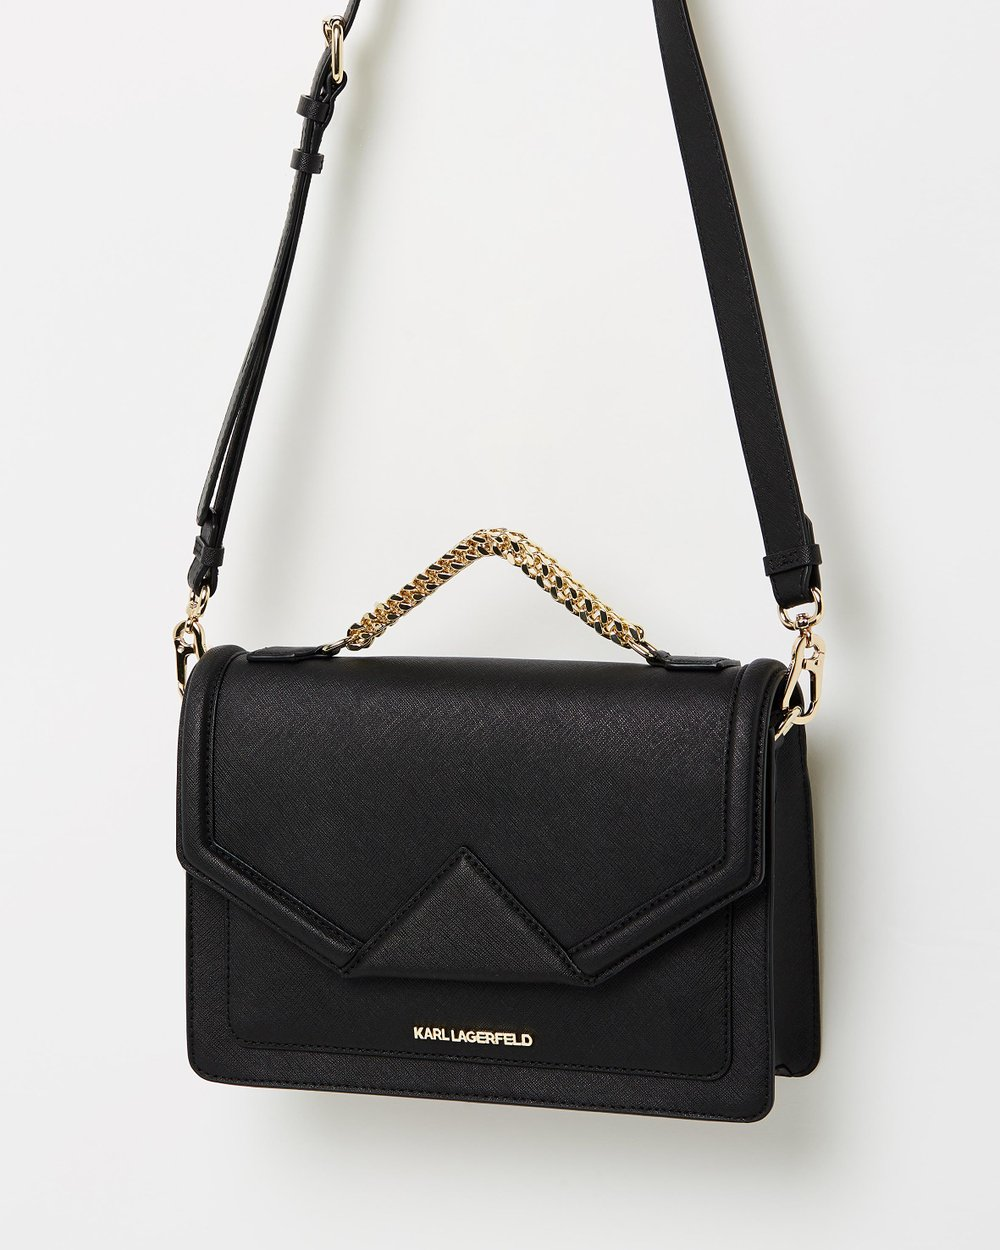 3a5ef59d2 K/Klassik Shoulder Bag by Karl Lagerfeld Online | THE ICONIC | Australia